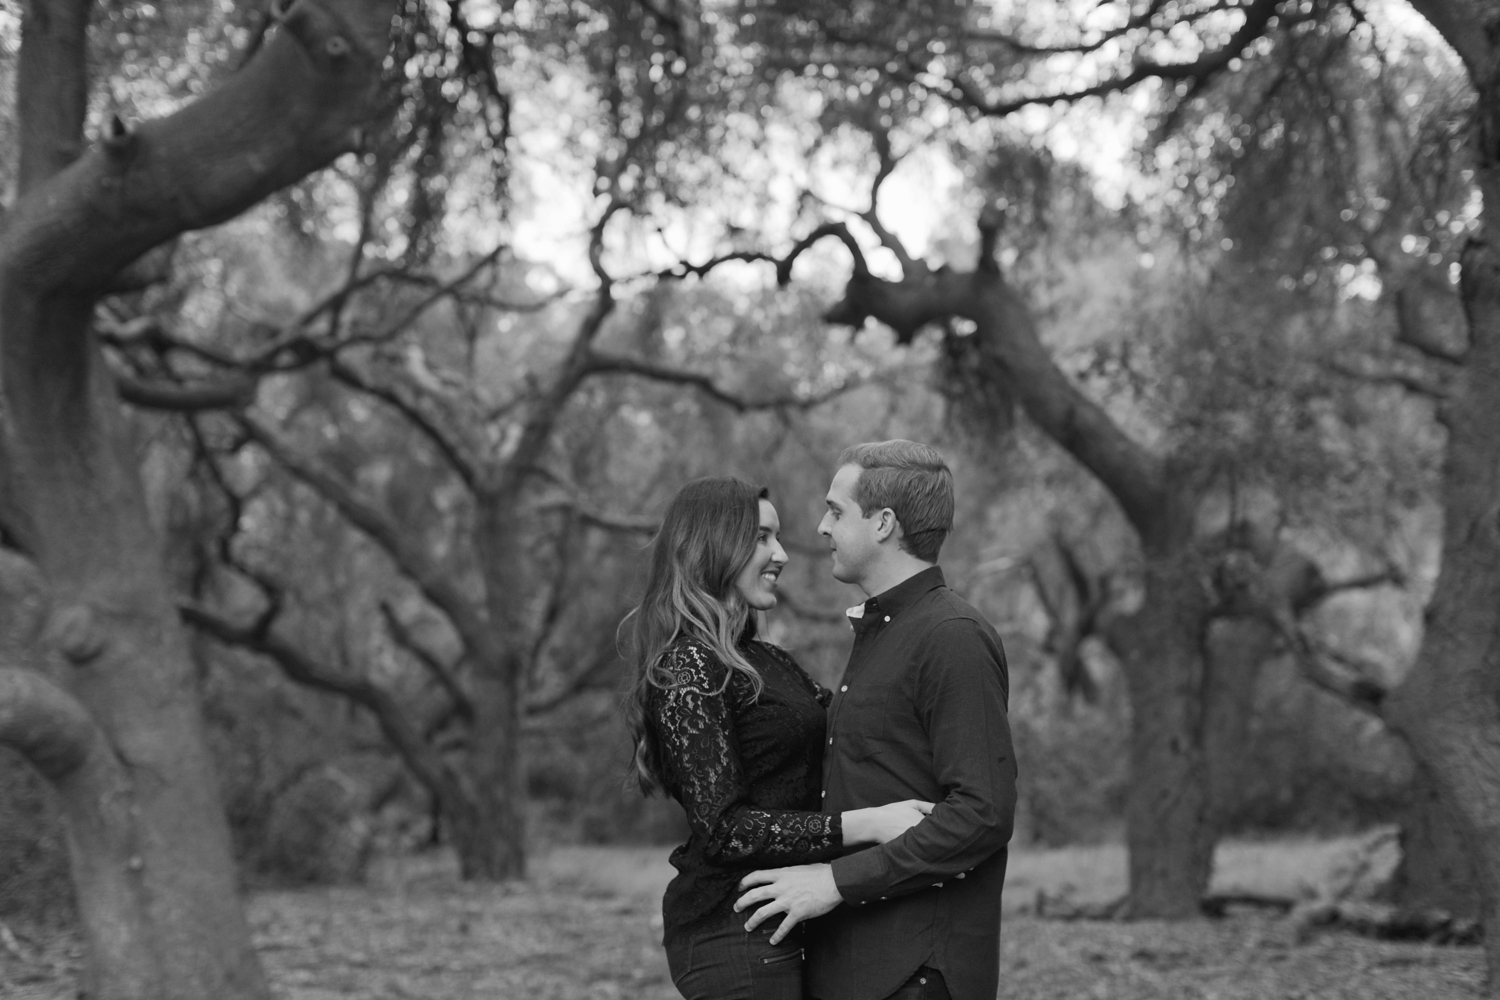 shewanders.san_.diego_.engagement.photography236.jpg.diego_.engagement.photography236.jpg